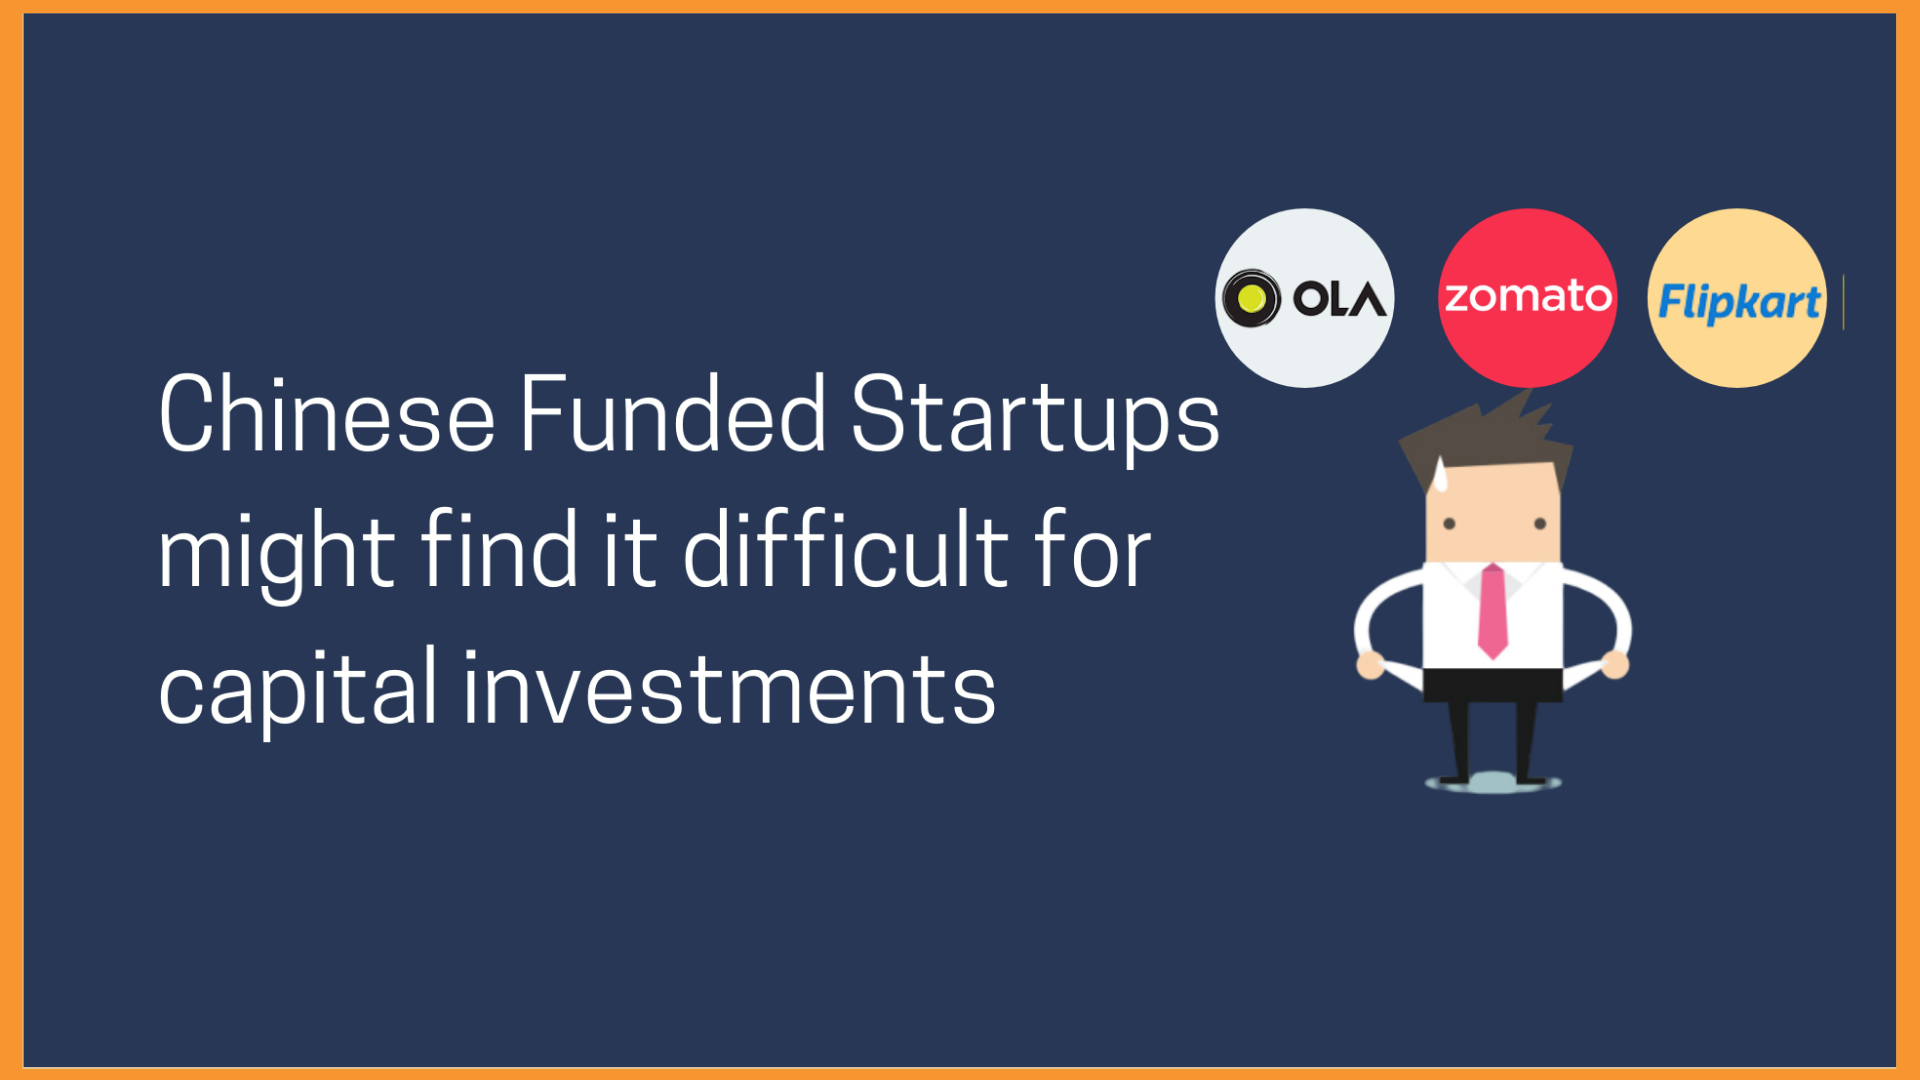 Chinese Funded Startups in India might find it difficult for capital investments